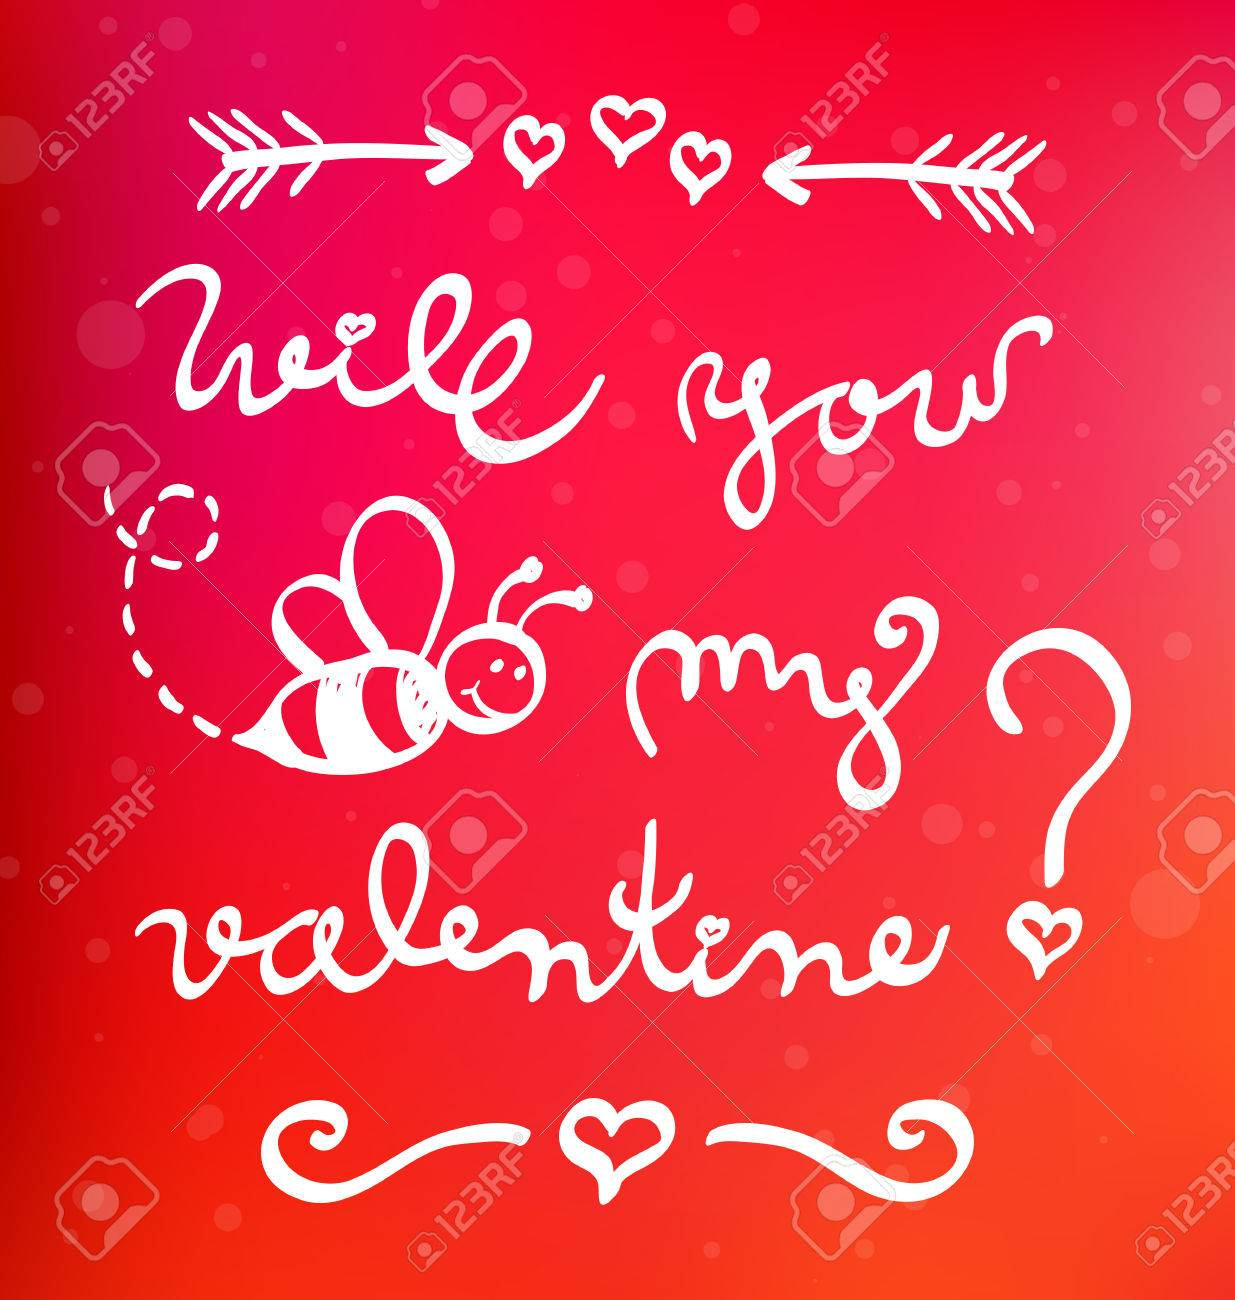 Funny Valentine Card Will You Bee My Valentine Royalty Free – Be My Valentine Funny Cards